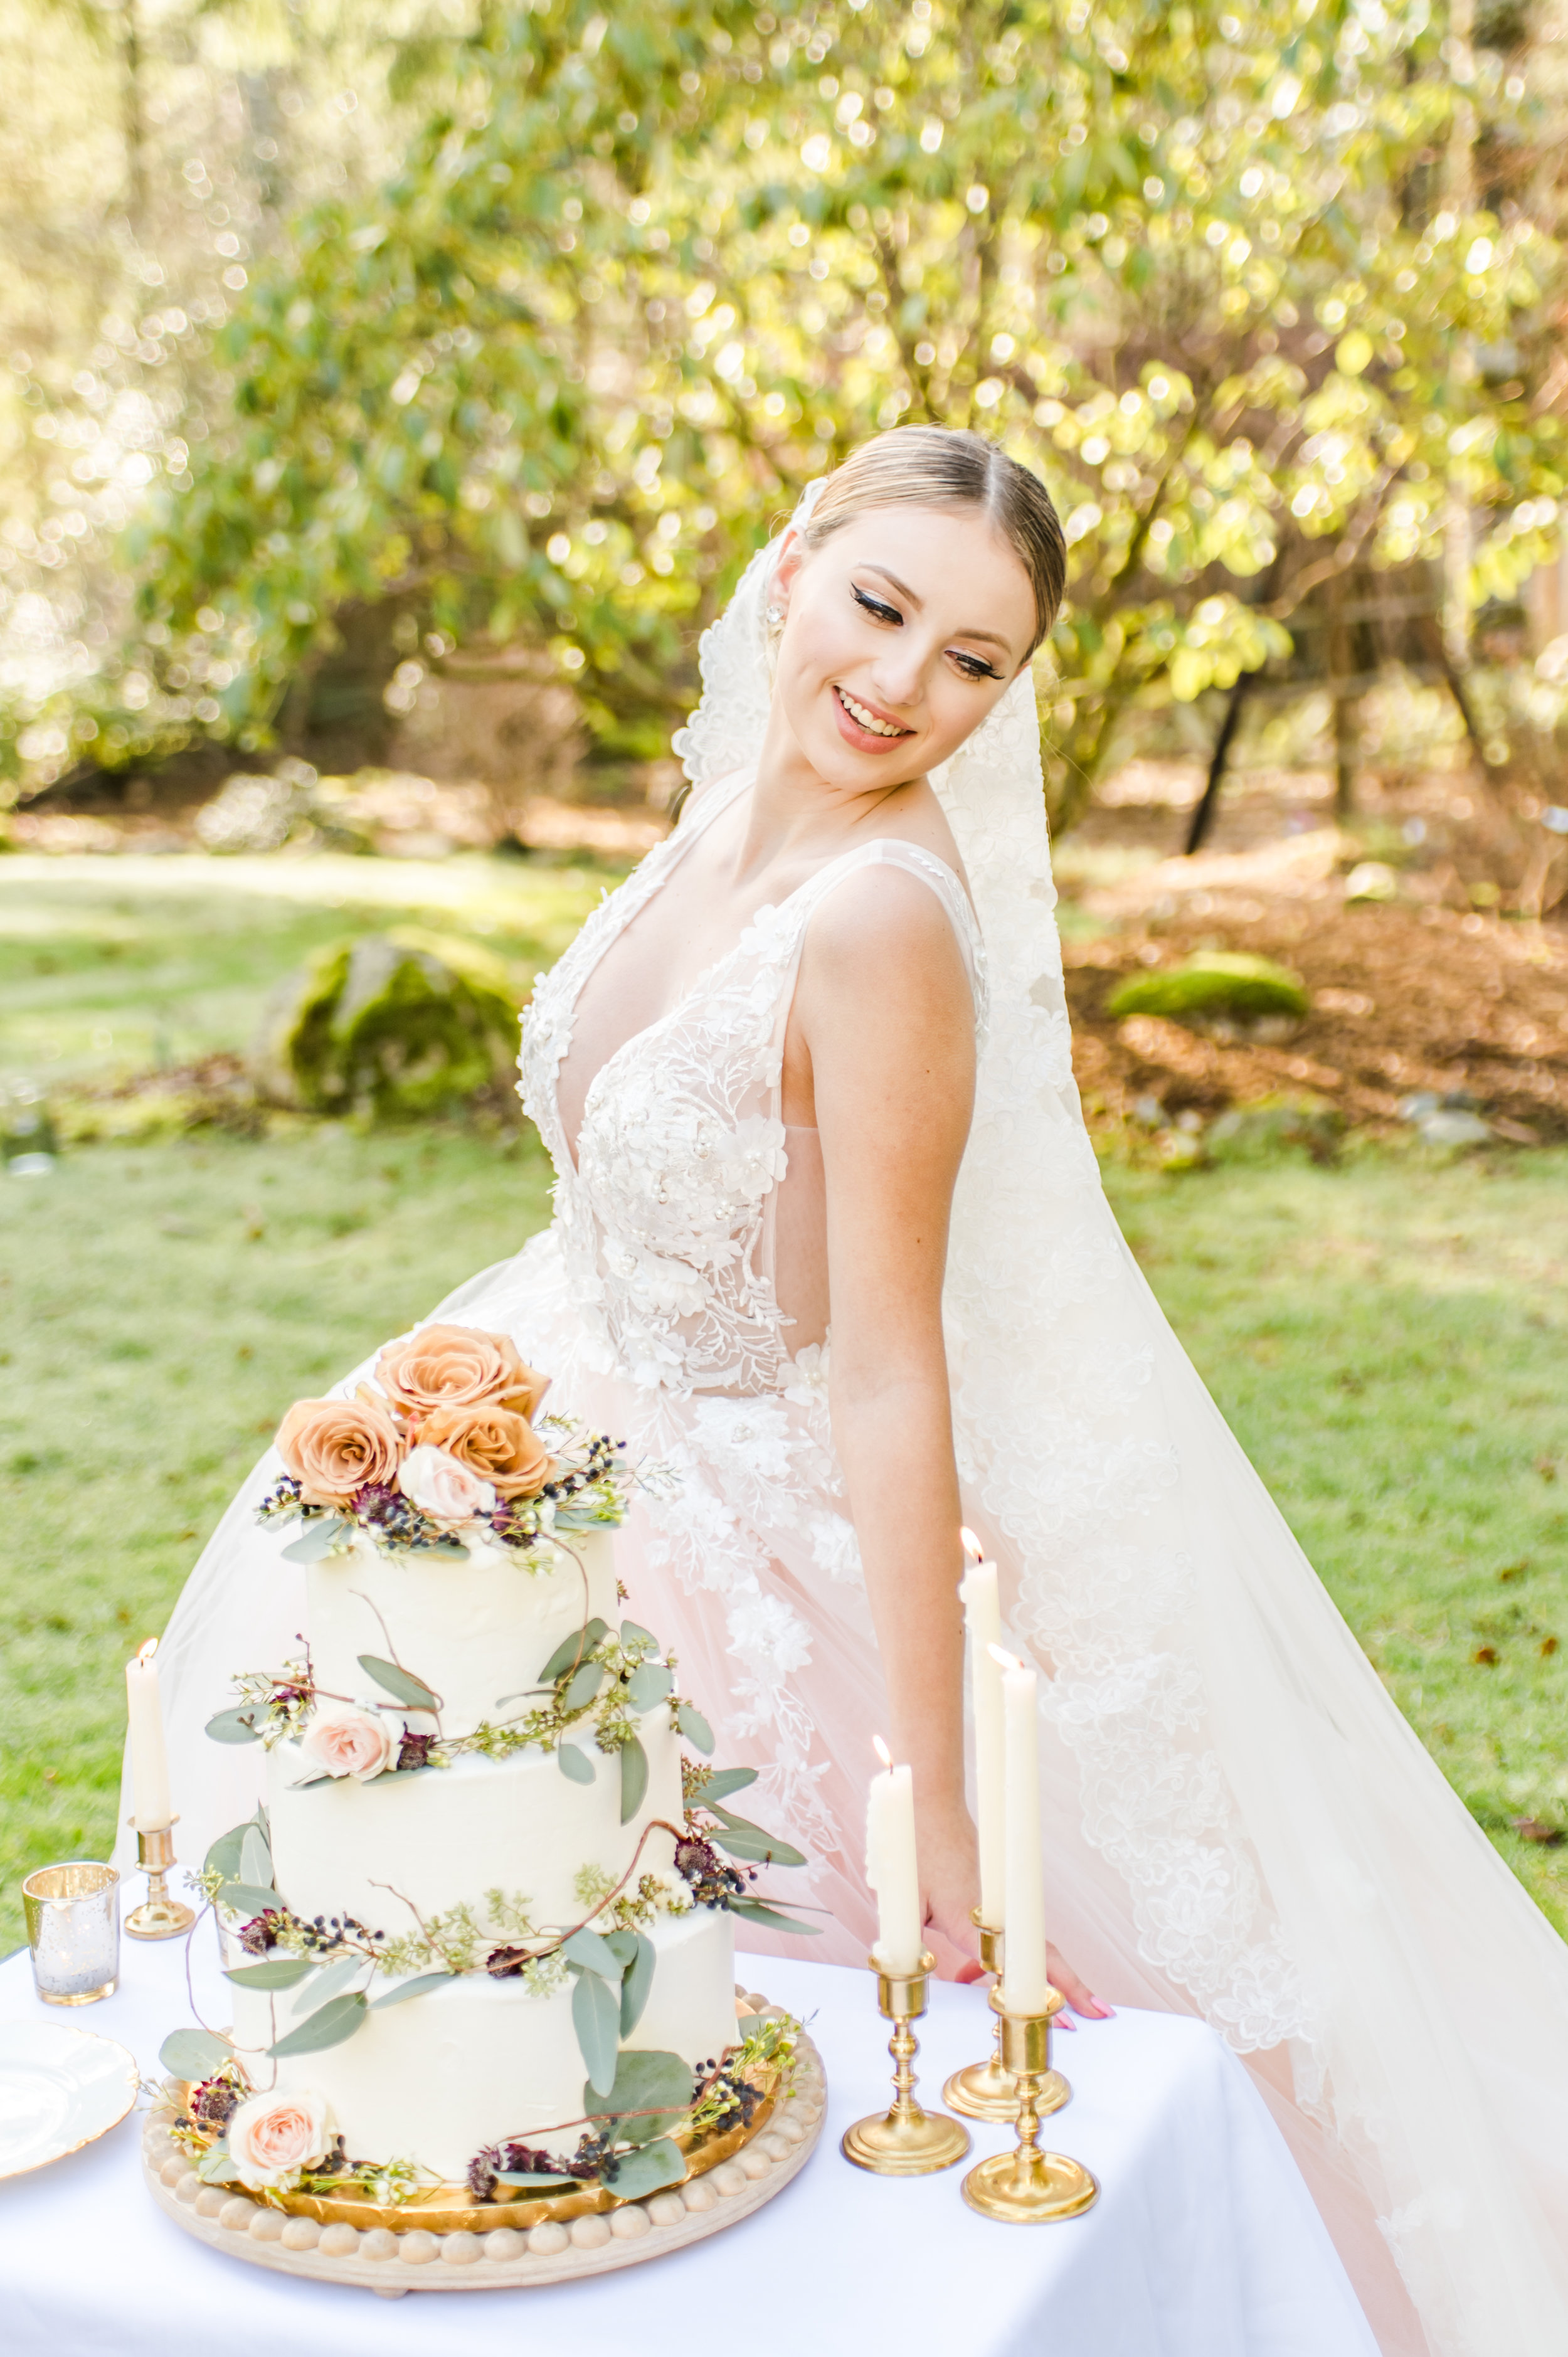 Bride models with wedding cake